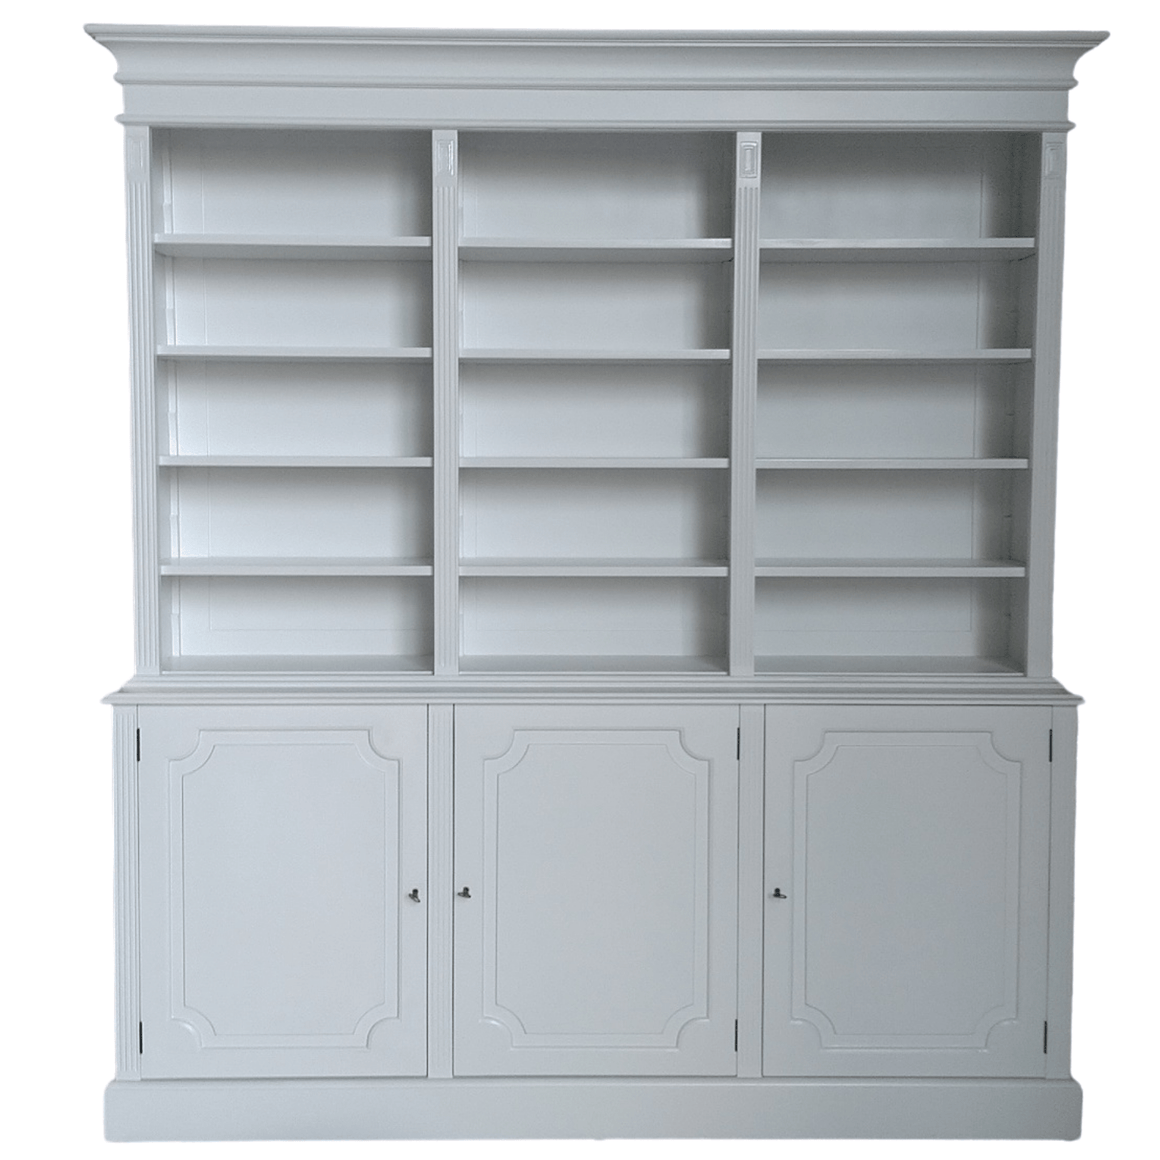 SOLID MAHOGANY HAMPTONS STYLE BOOKCASE/LIBRARY WHITE  C/W ADJUSTABLE SHELVES